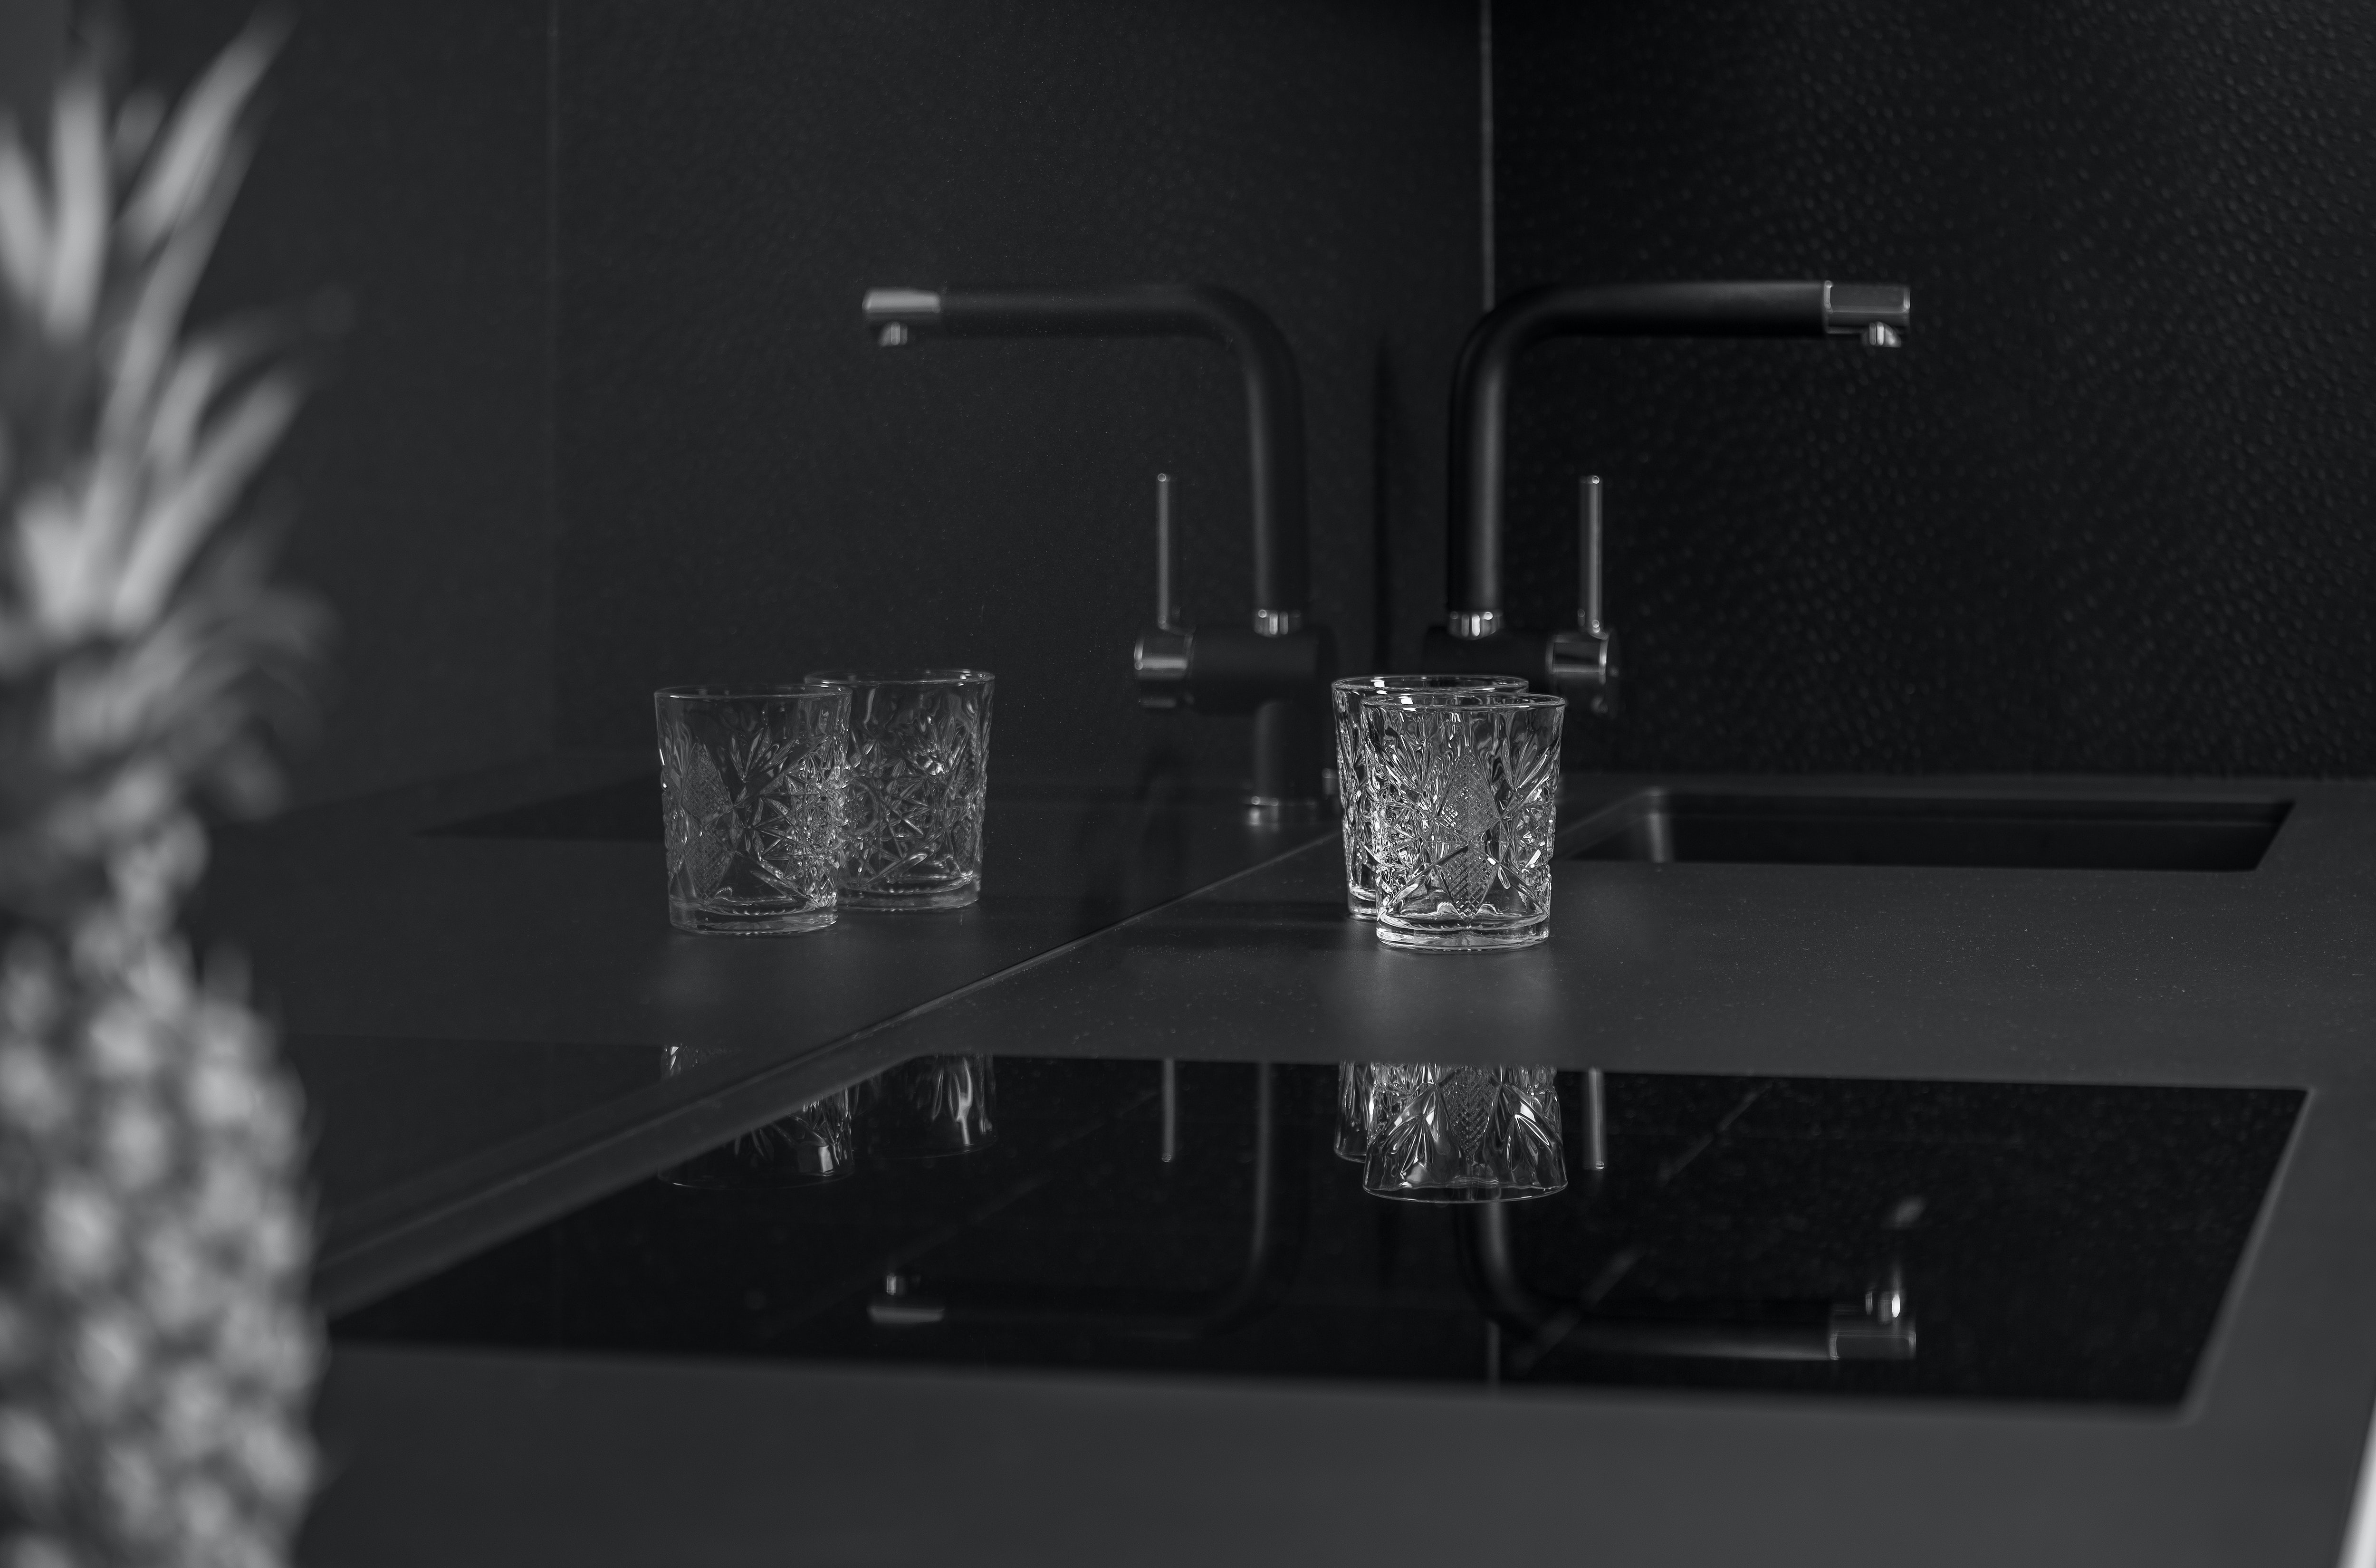 grayscale photo of two rocks glass near sink